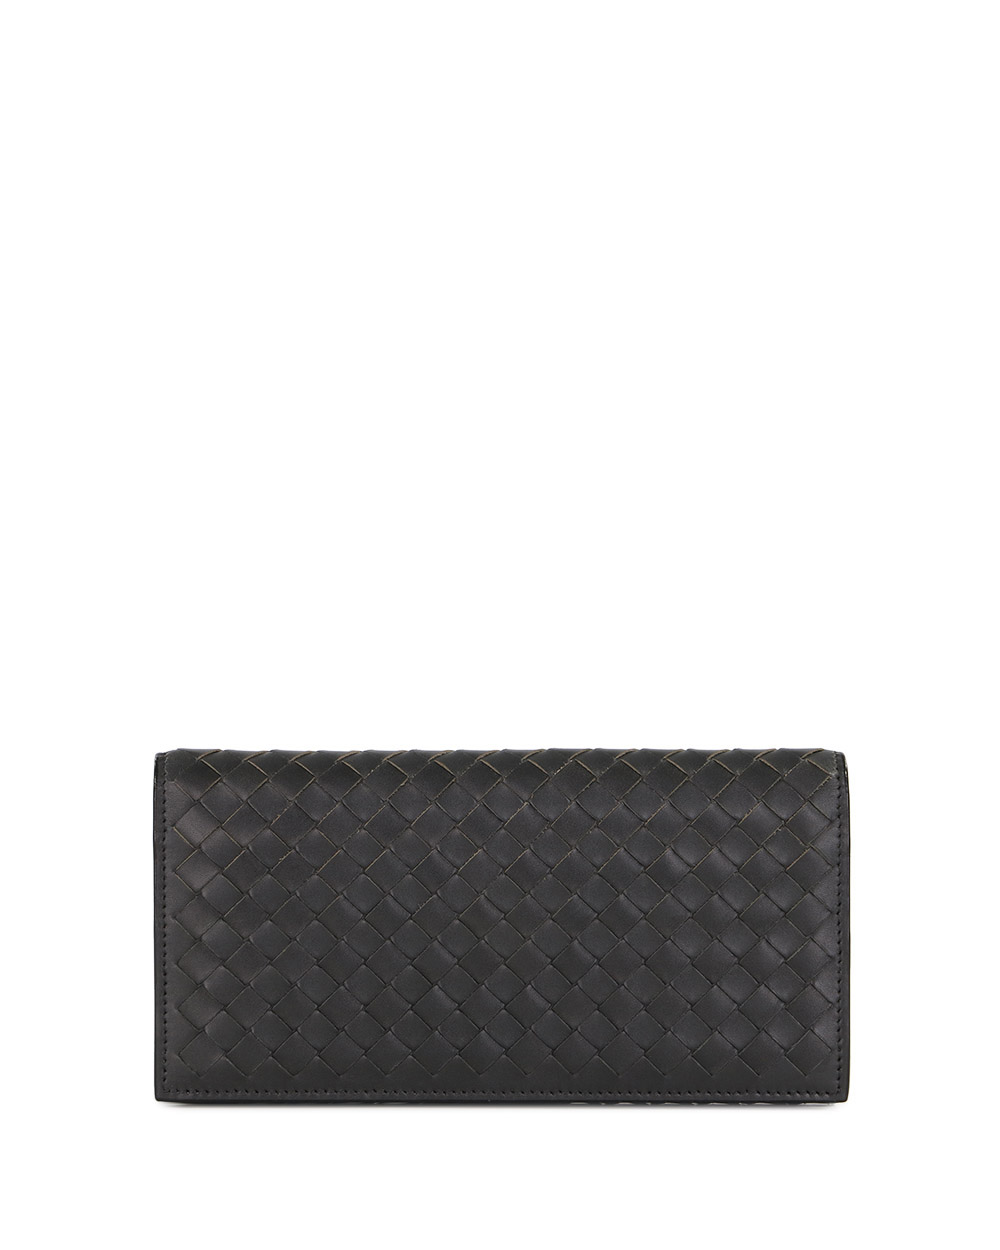 Woven Leather Wallet